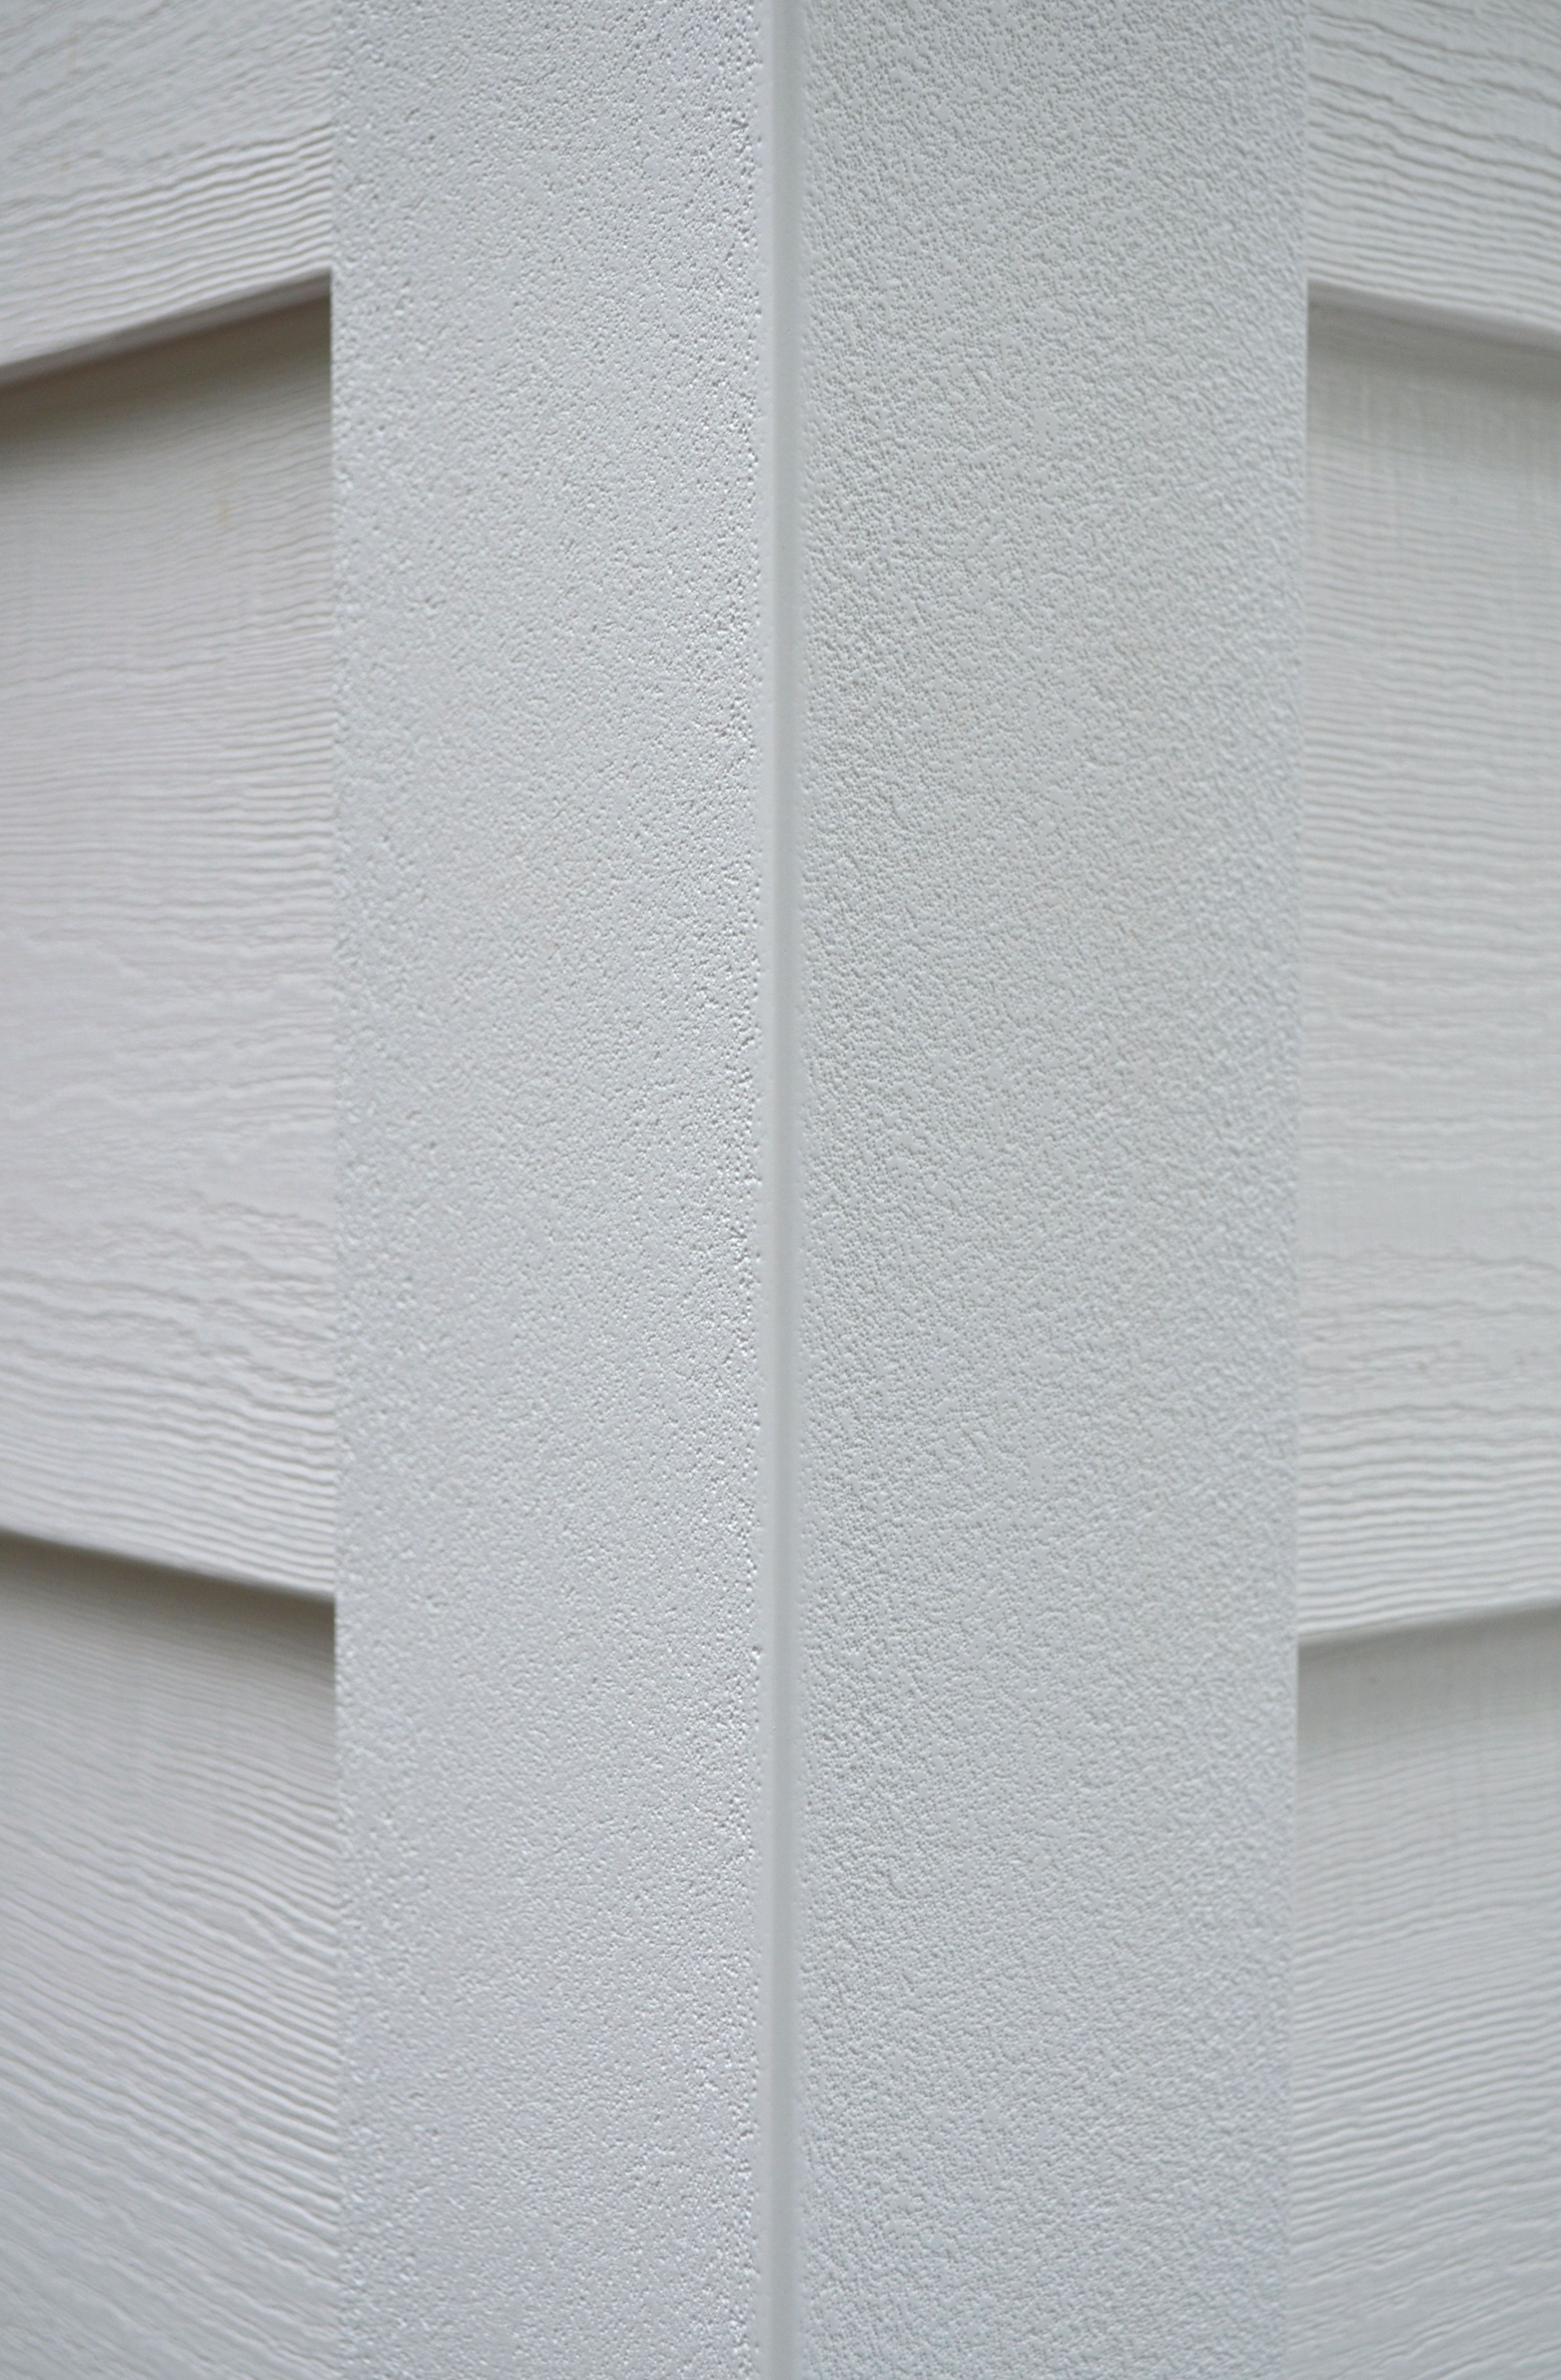 Everlast Polymeric Cladding 6 7 8 Profile With Everlast Outside Corner Post In White Wow Window Trim Exterior House Siding Cladding